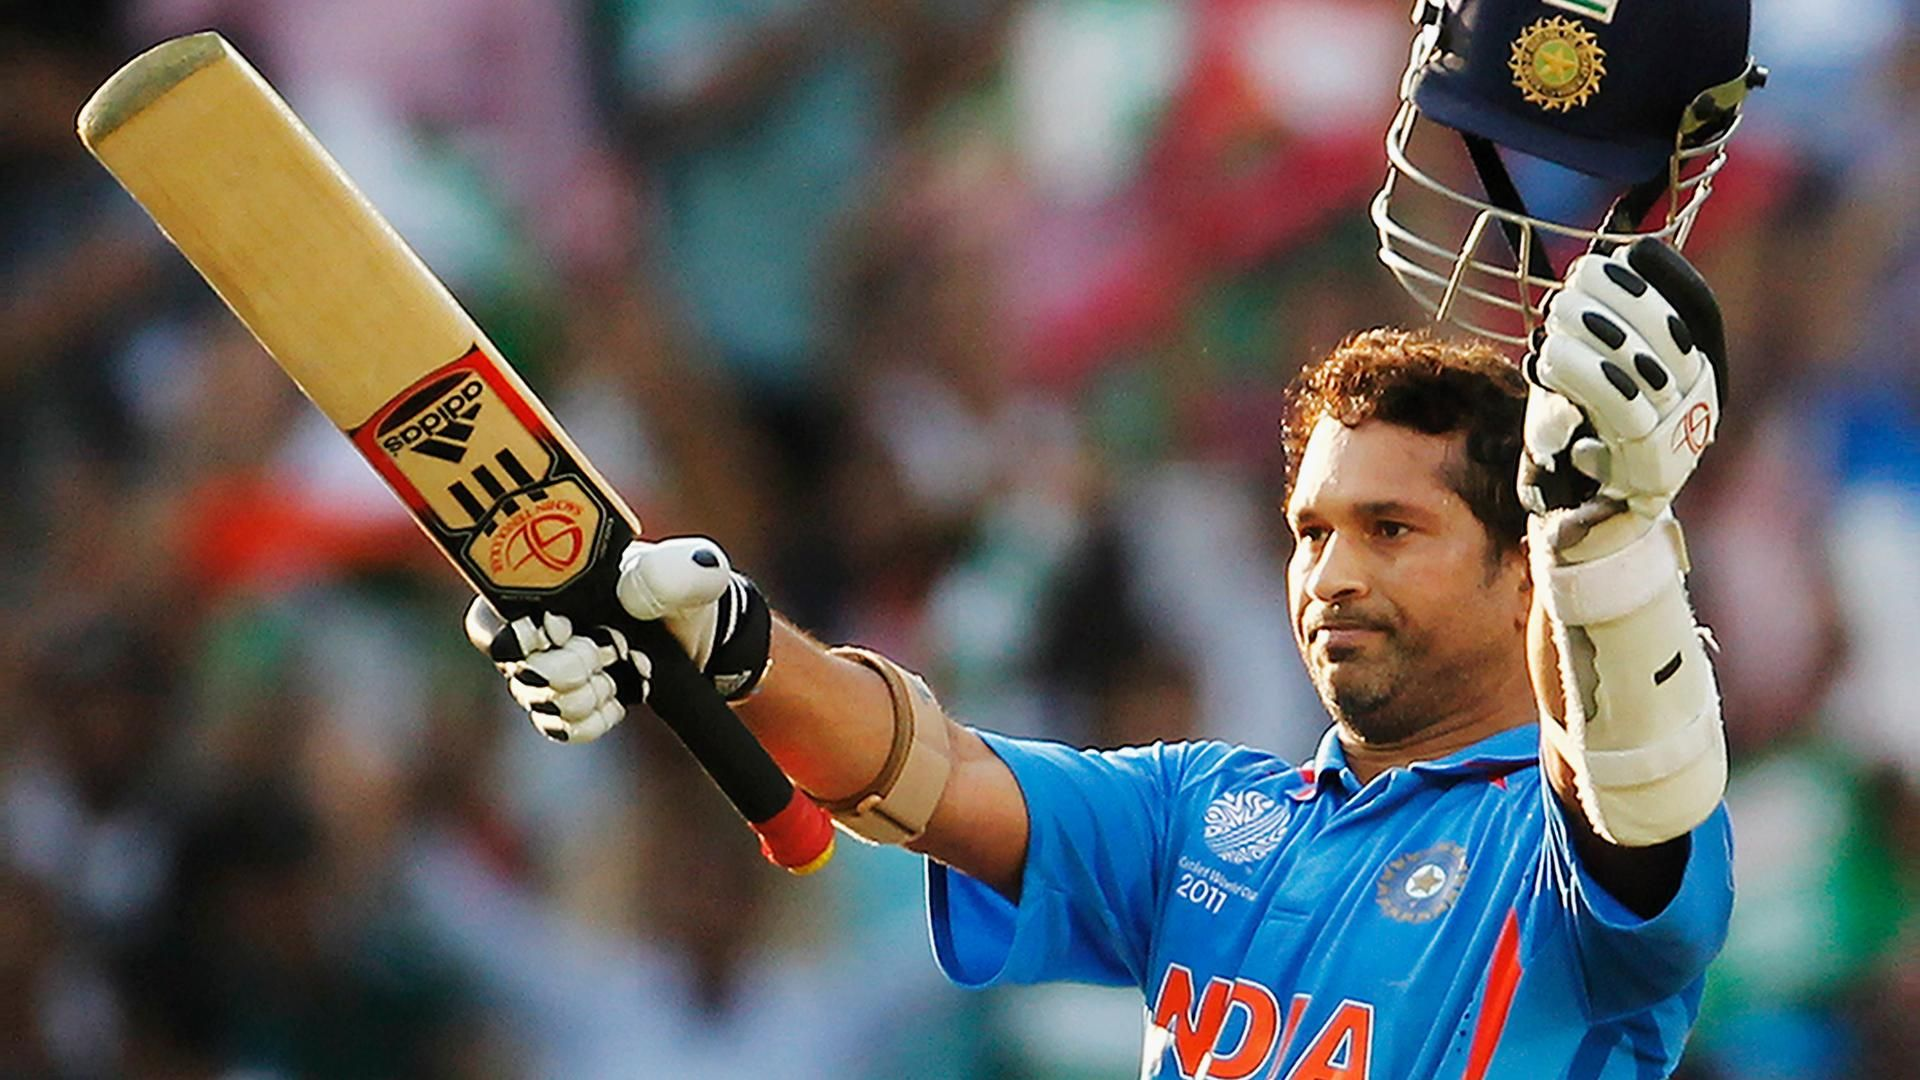 10 'just sachin' things that every indian is proud of - playo